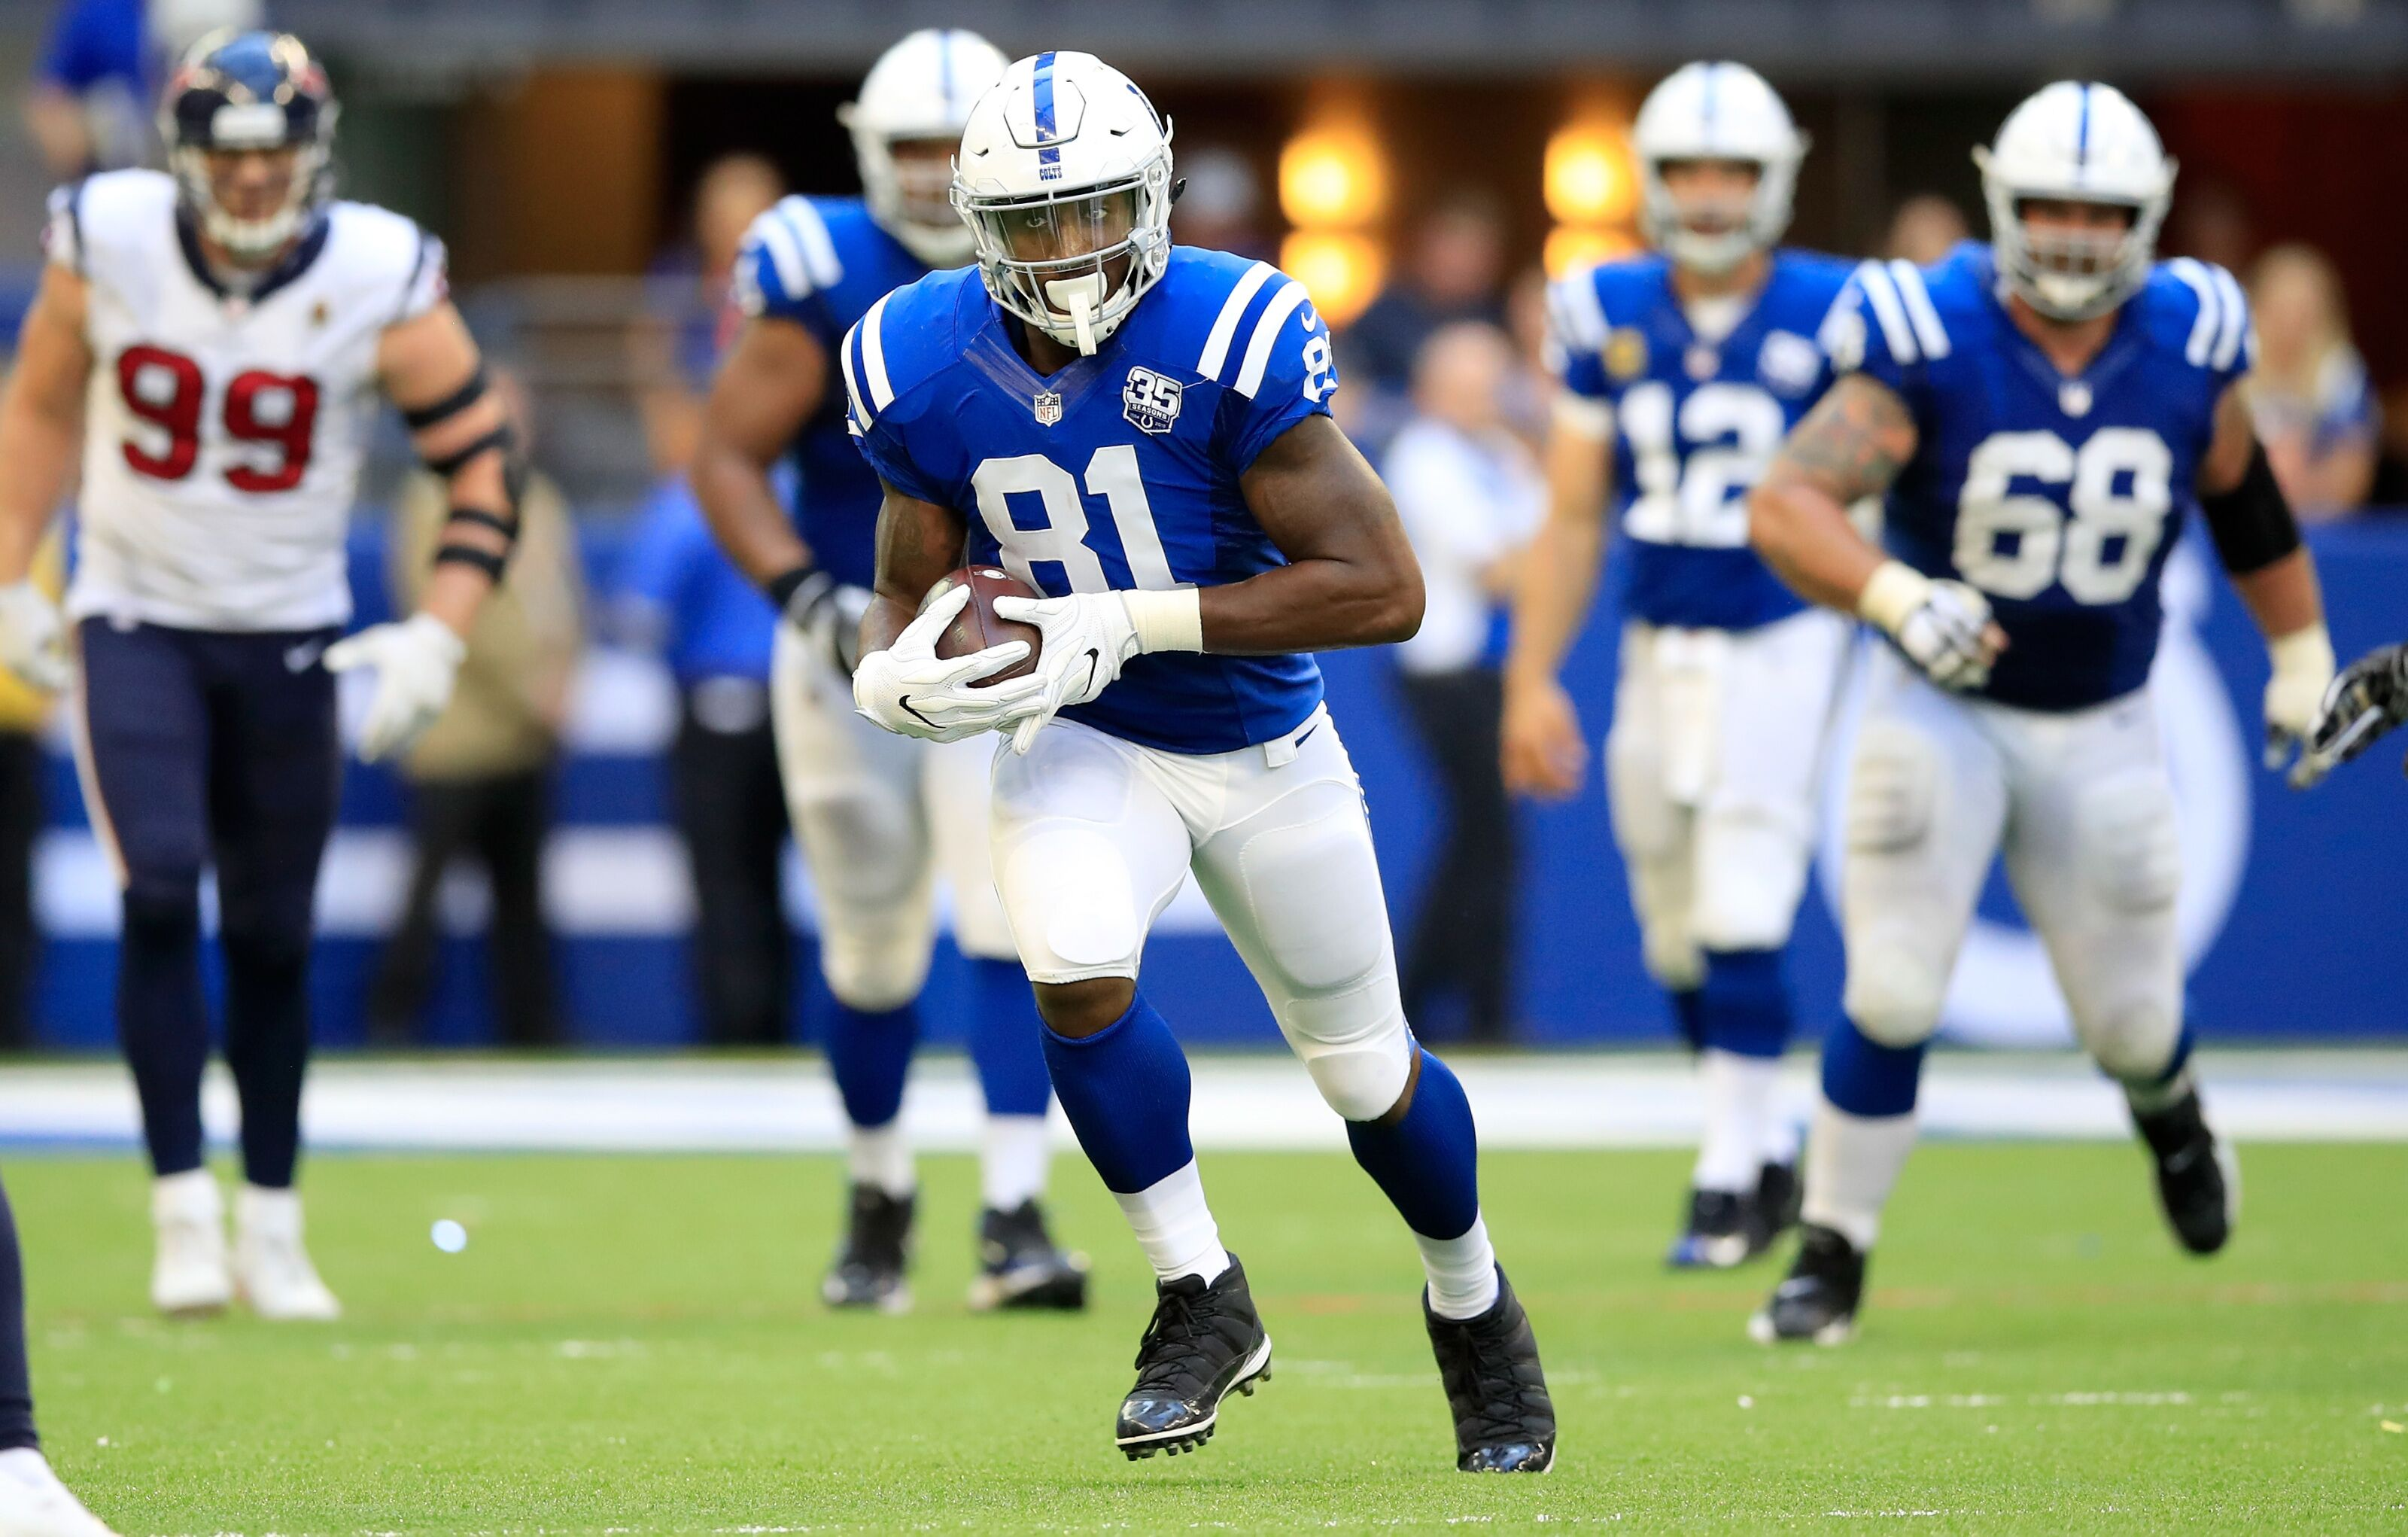 Indianapolis Colts: Tight end Mo Alie-Cox primed for breakout season